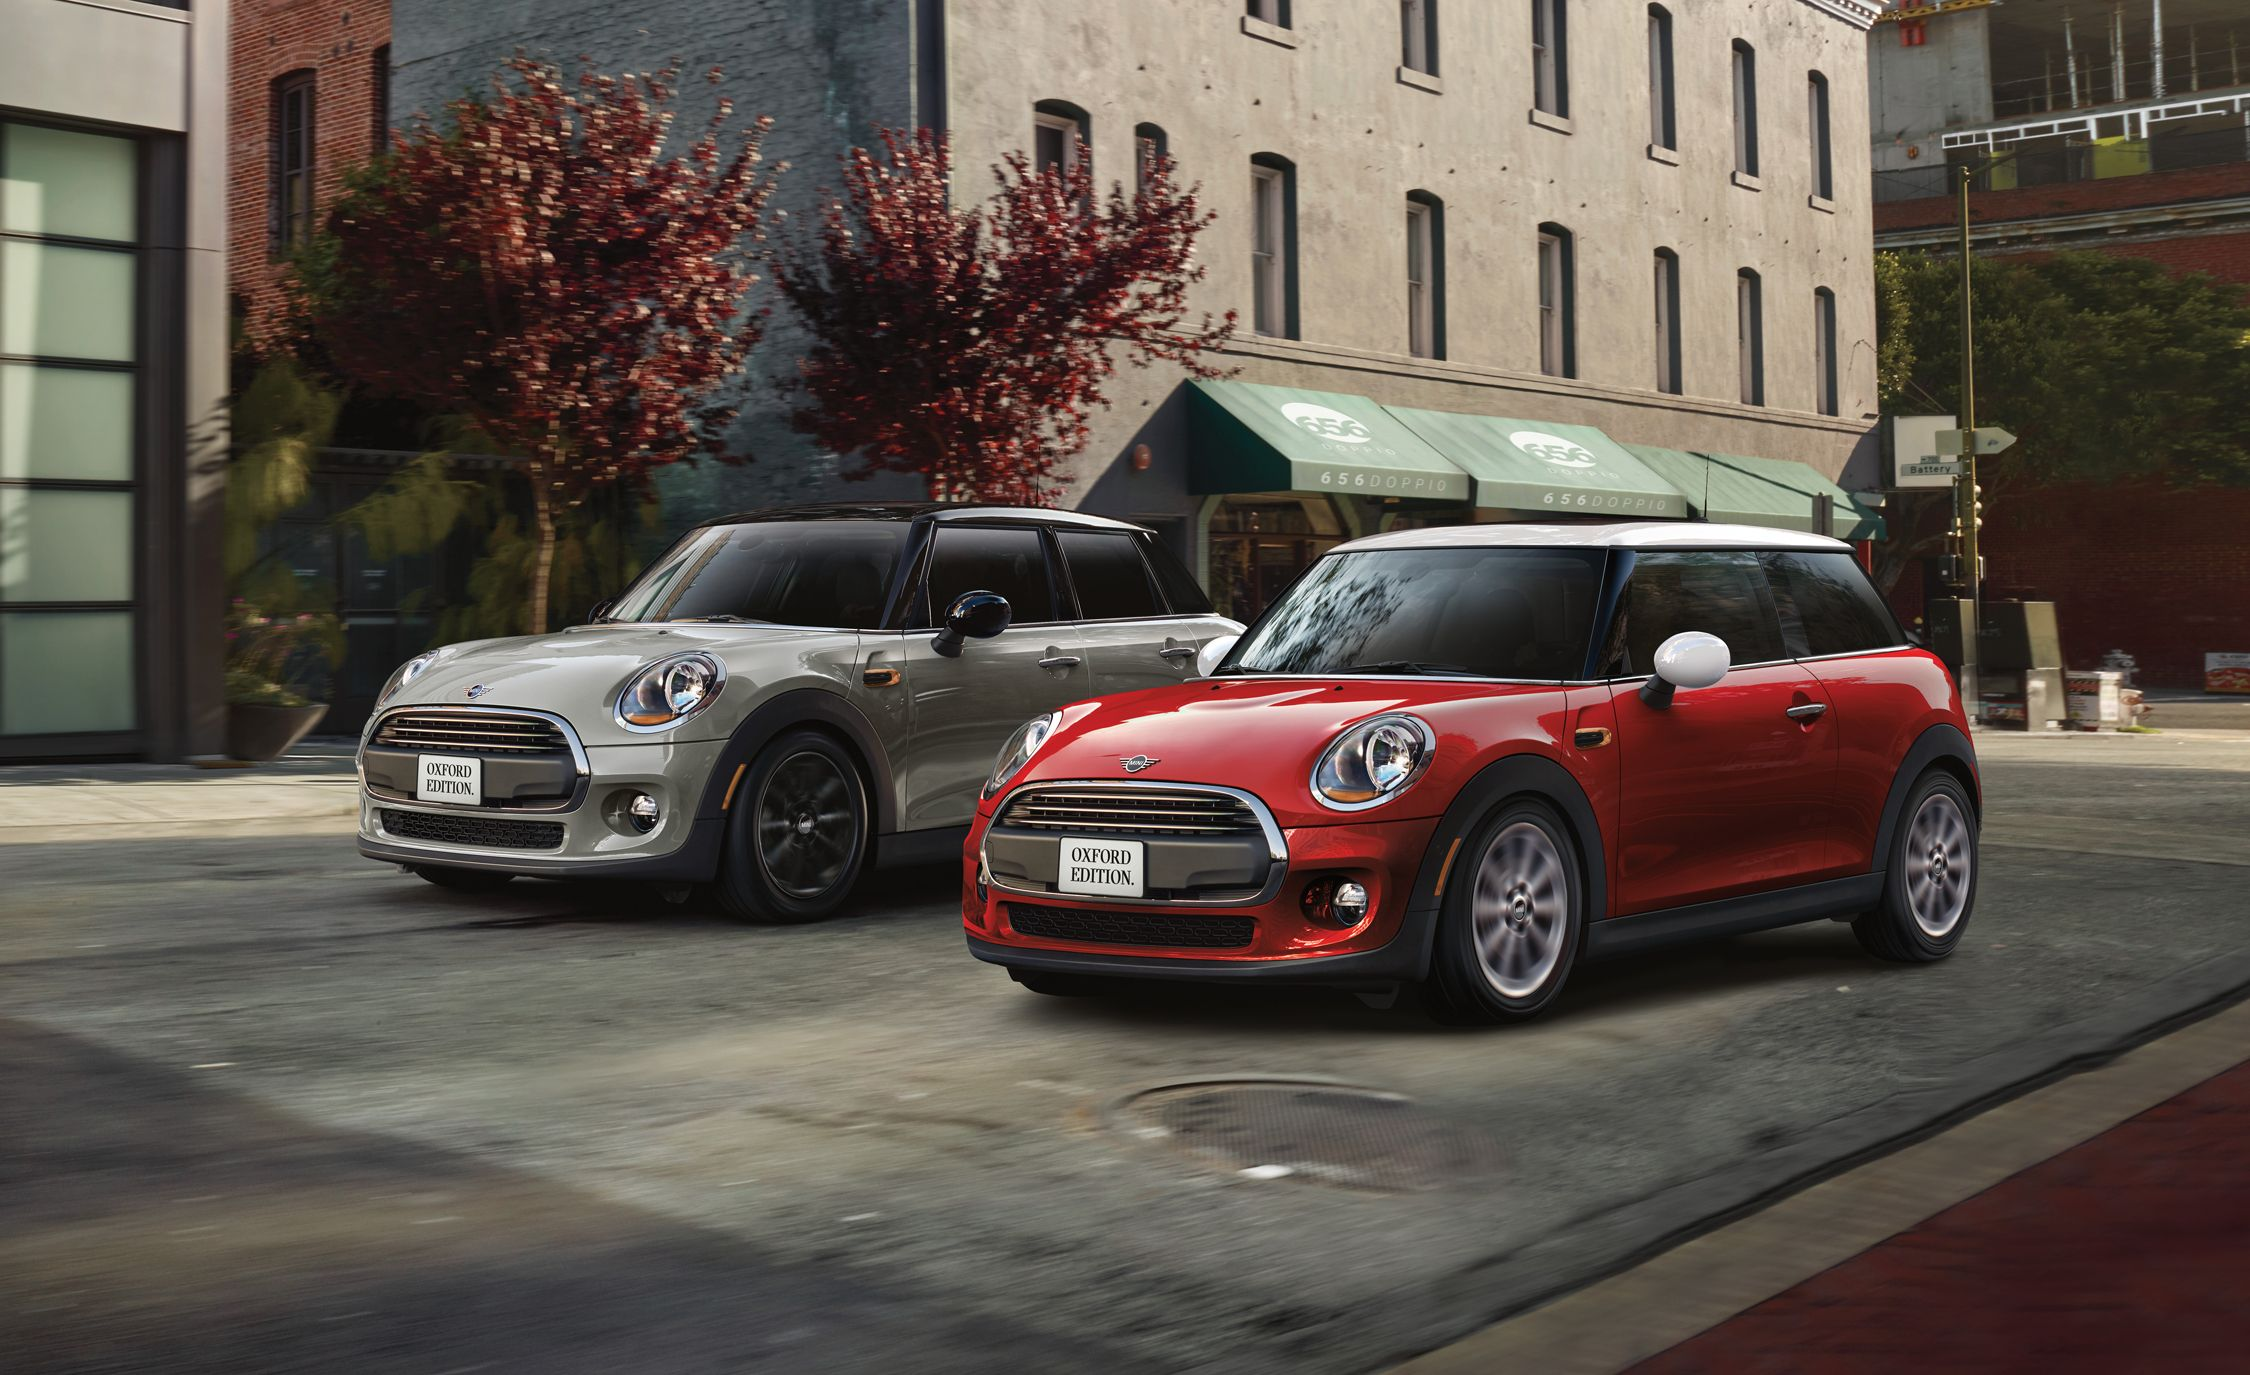 Mini Cooper Hardtop / S Reviews | Mini Cooper Hardtop / S Price, Photos,  and Specs | Car and Driver